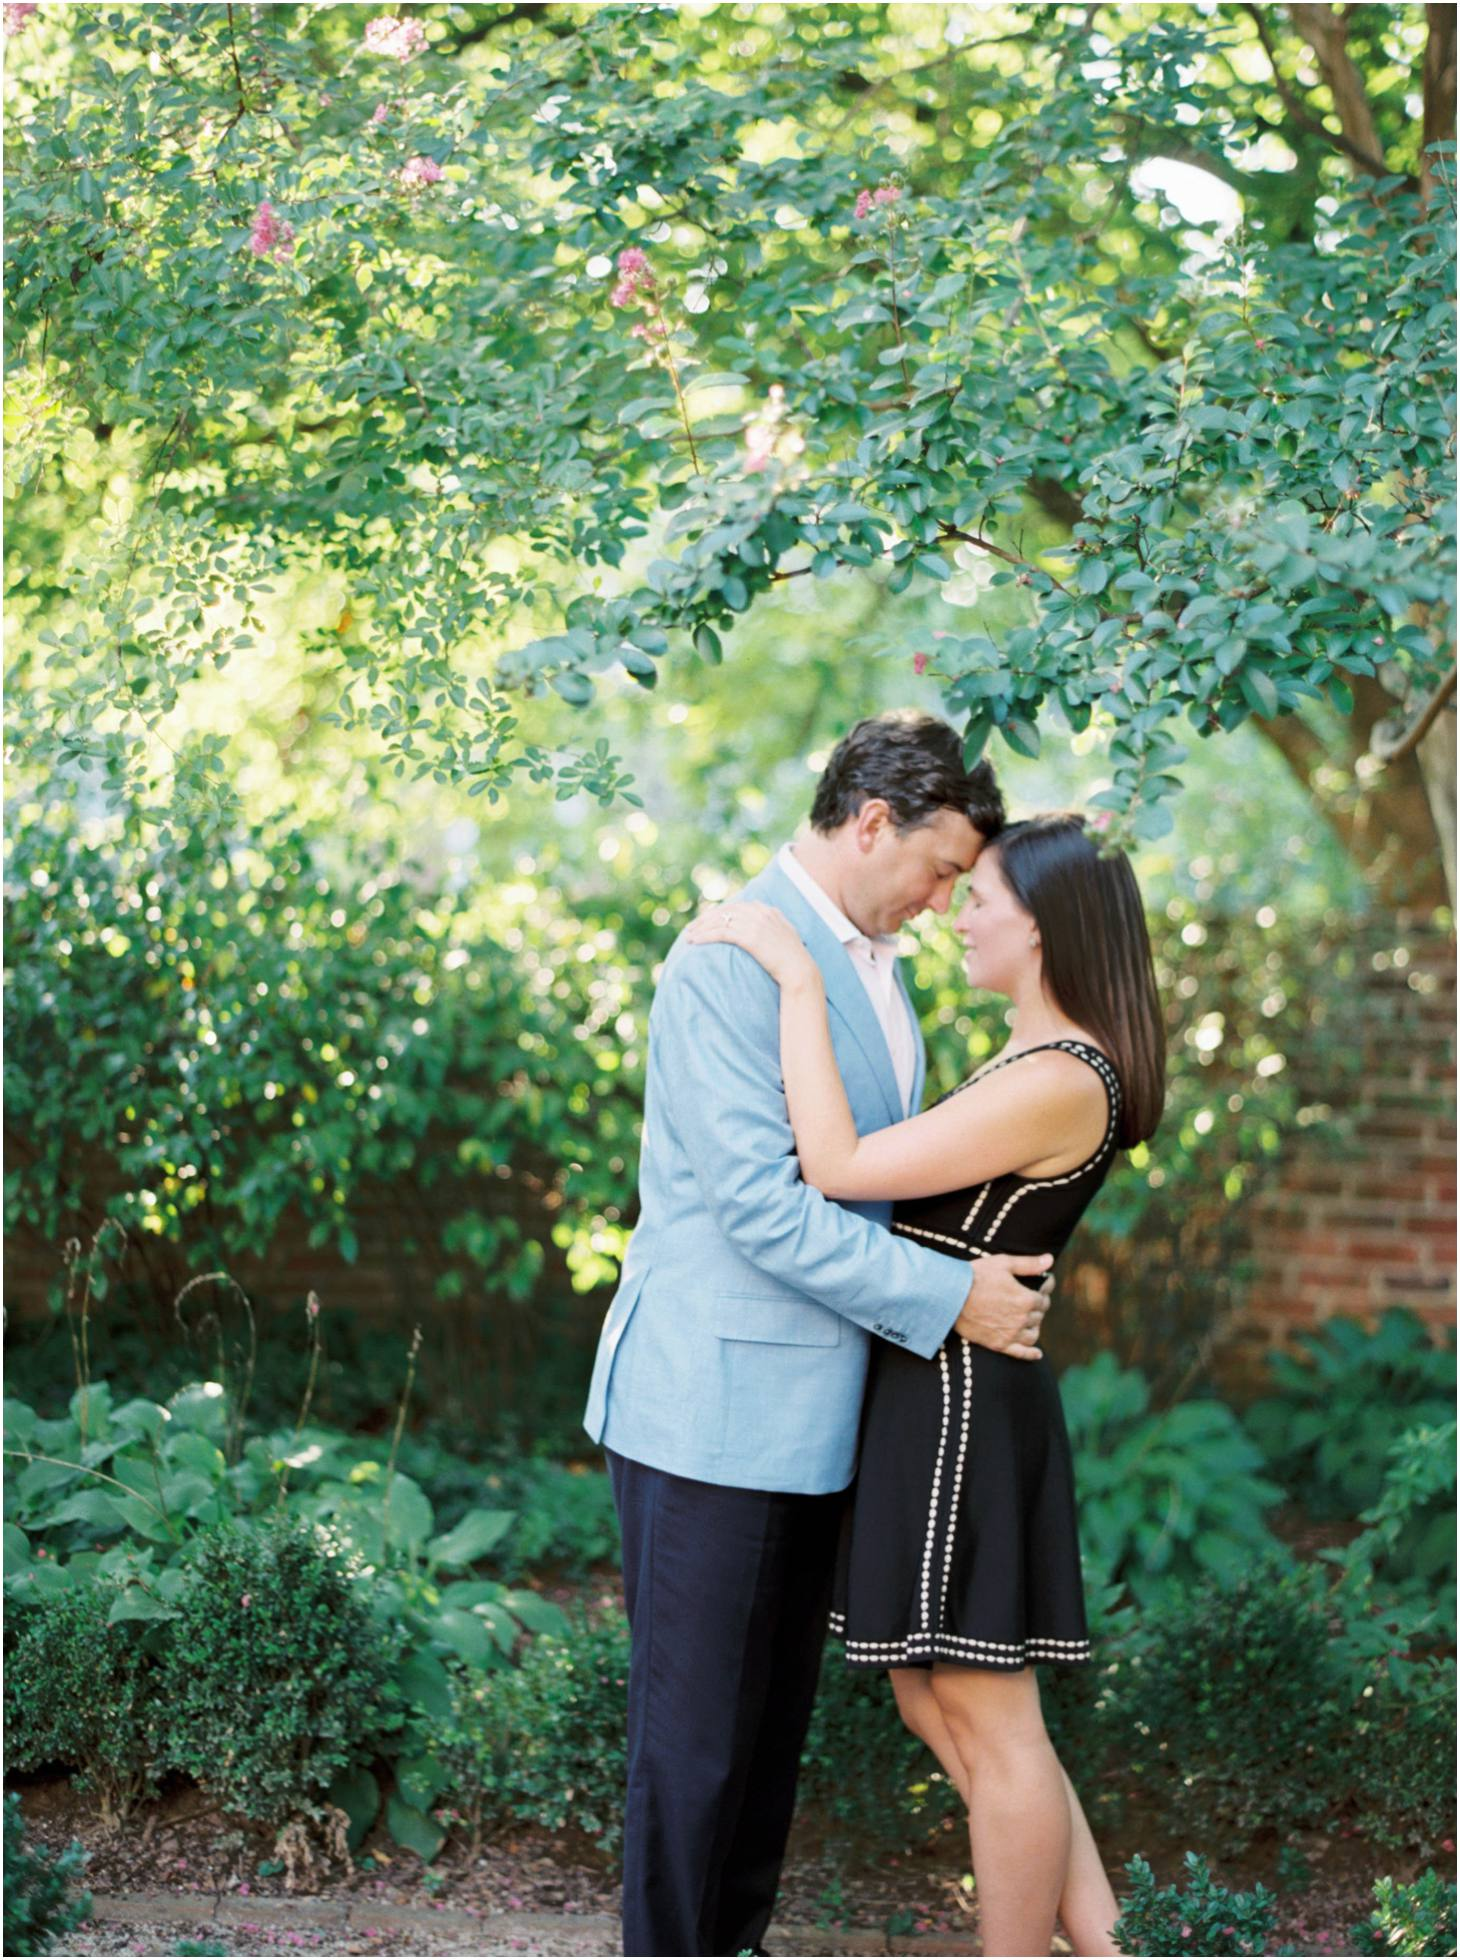 kim-stockwell-photography-fine-art-film-engagements-charlottesville-virginia-meghan-and-taylor_0834